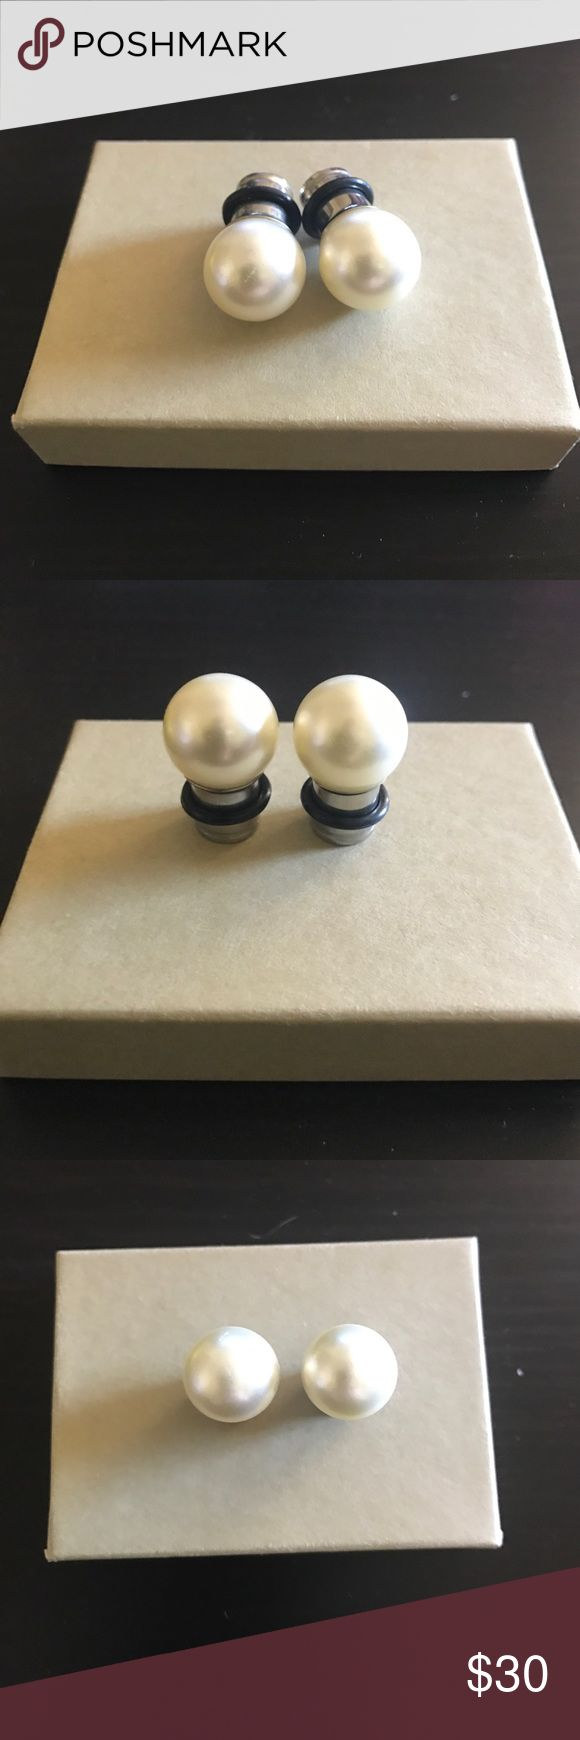 Pearl gauged earrings Brand new (never been worn) pearl gauged earrings size double zero. The size of the pearl has a diameter of 1.5 cm. Super cute pair of gauges! Jewelry Earrings